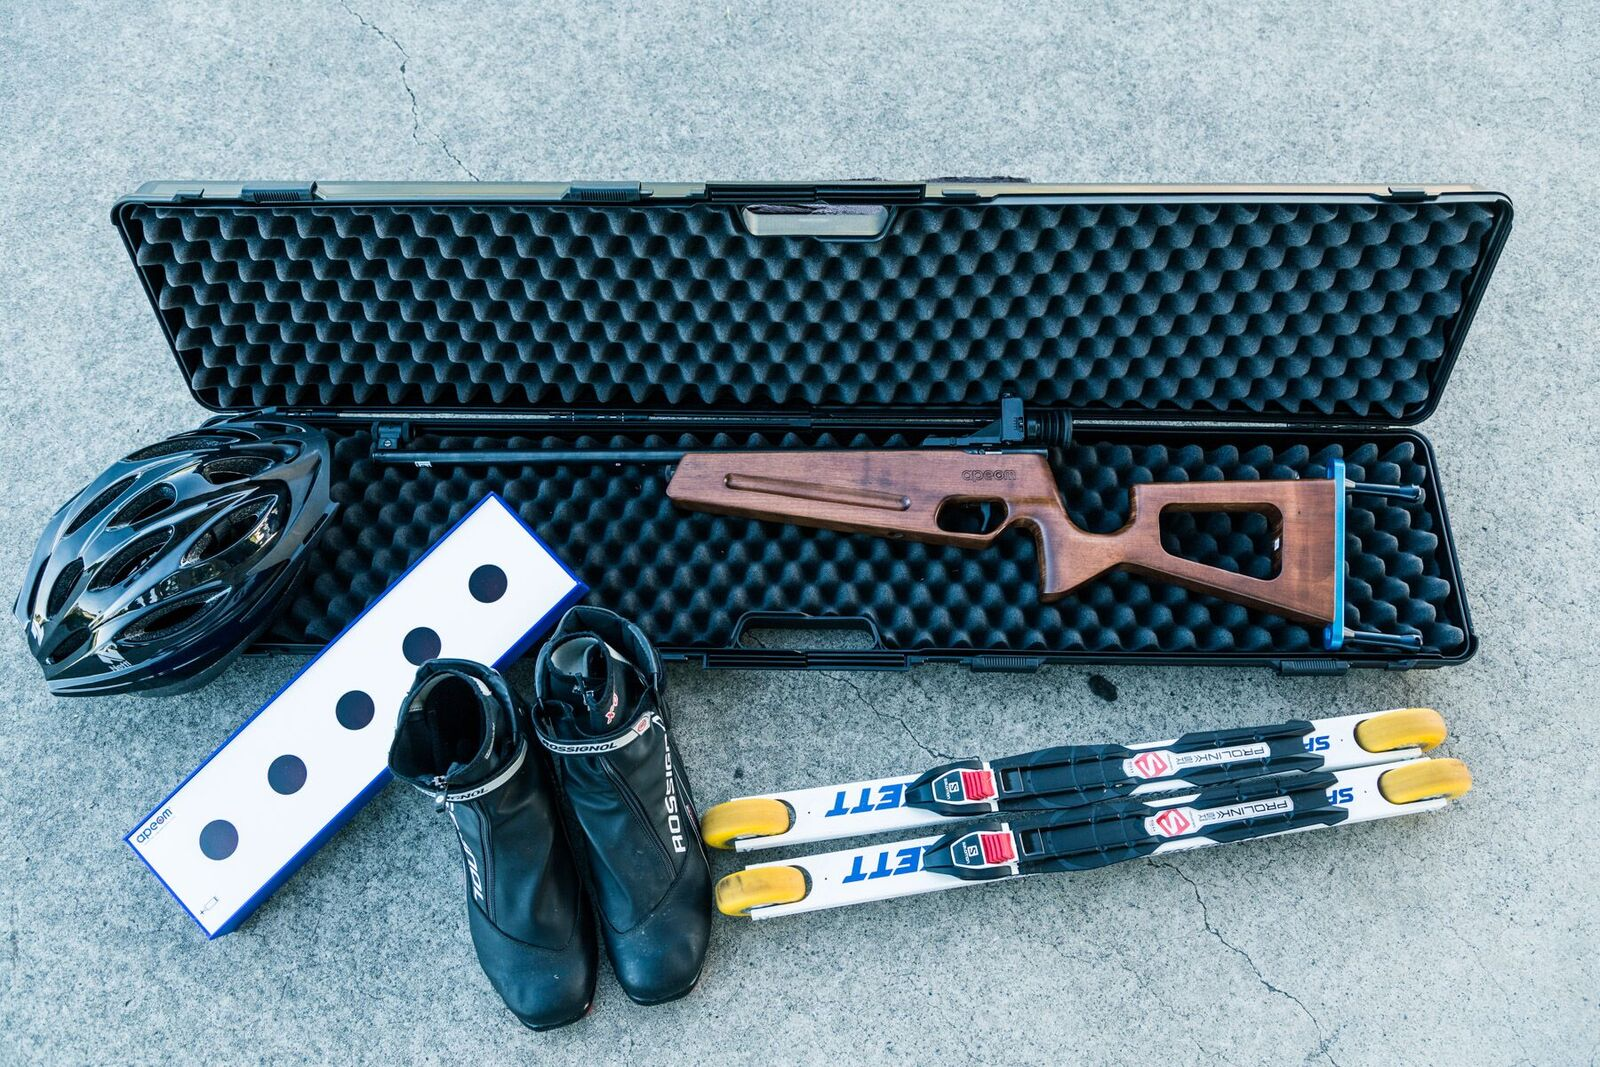 LASER BIATHLON - Take the Winter Olympics sport of Biathlon and transport it to Queensland!....How can you ski and shoot when there is no snow!JUST DO IT: ROLL has the answer. We have substituted Roller Skis for Cross country skis because they imitate the actions and feel of skis on snow and use quality Laser rifles which emit a very safe, Level 1 laser instead of bullets. Add to that, ski boots, protective gear, targets and ski poles and you have the dry land version of Winter Biathlon